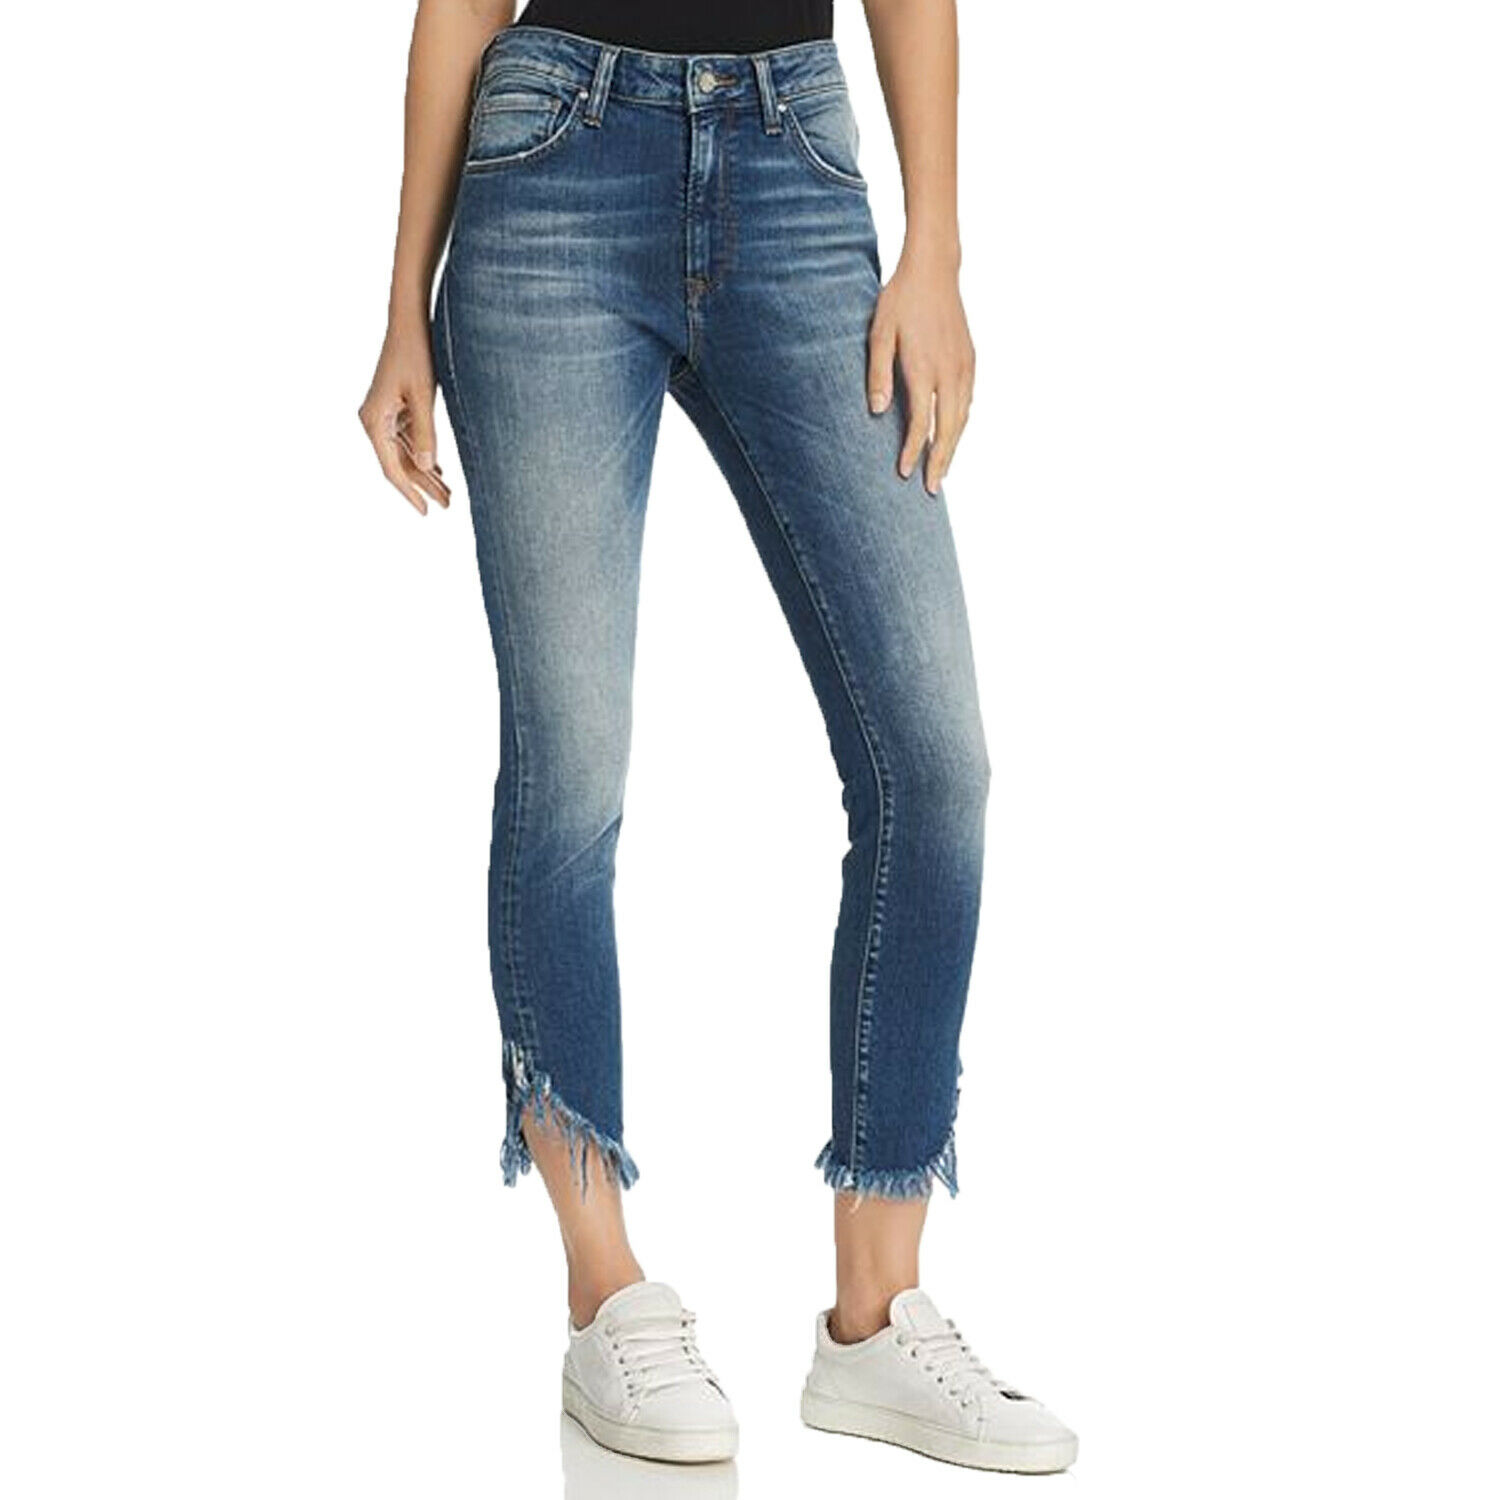 Mavi New With Tags Tess High Rise Skinny Jeans - Extreme Ripped Vintage Extreme